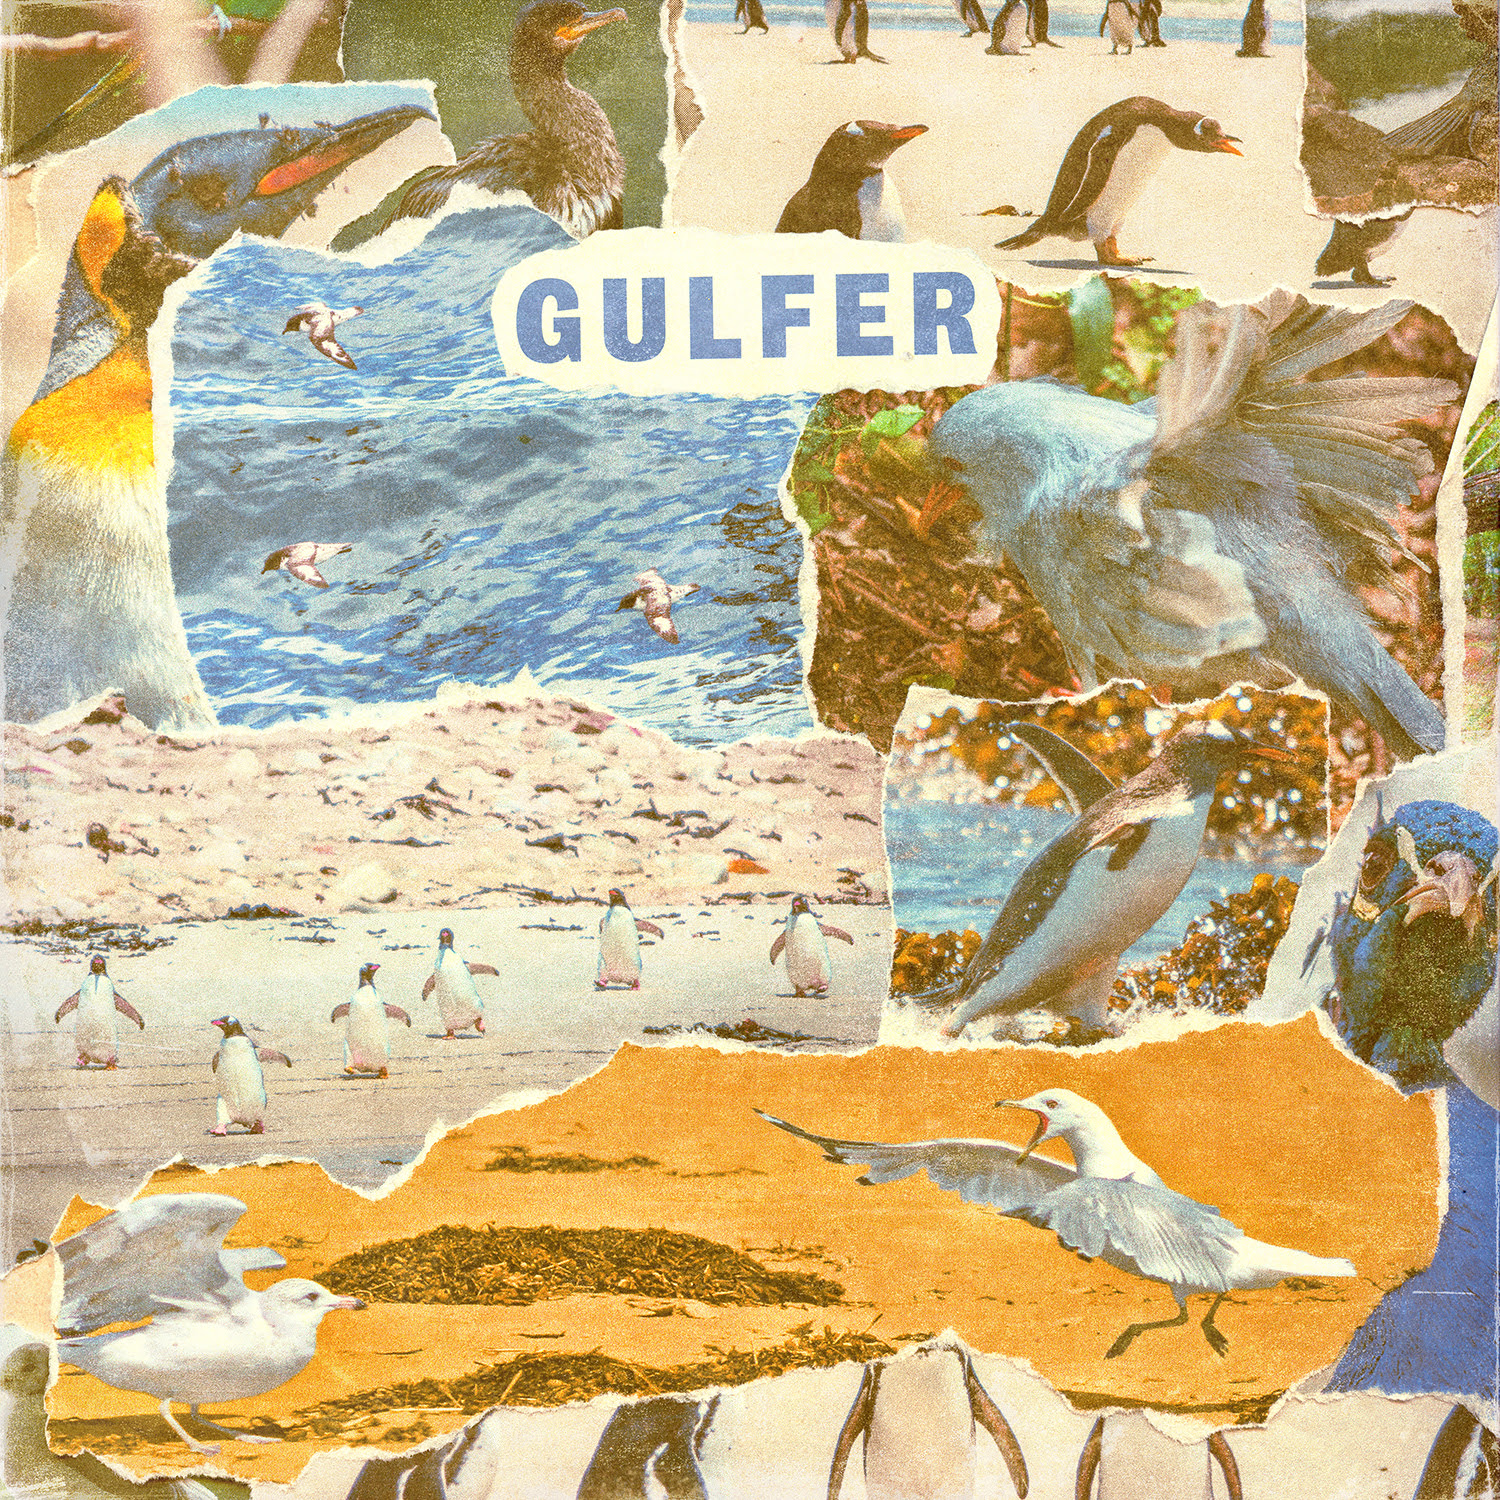 Gulfer album art